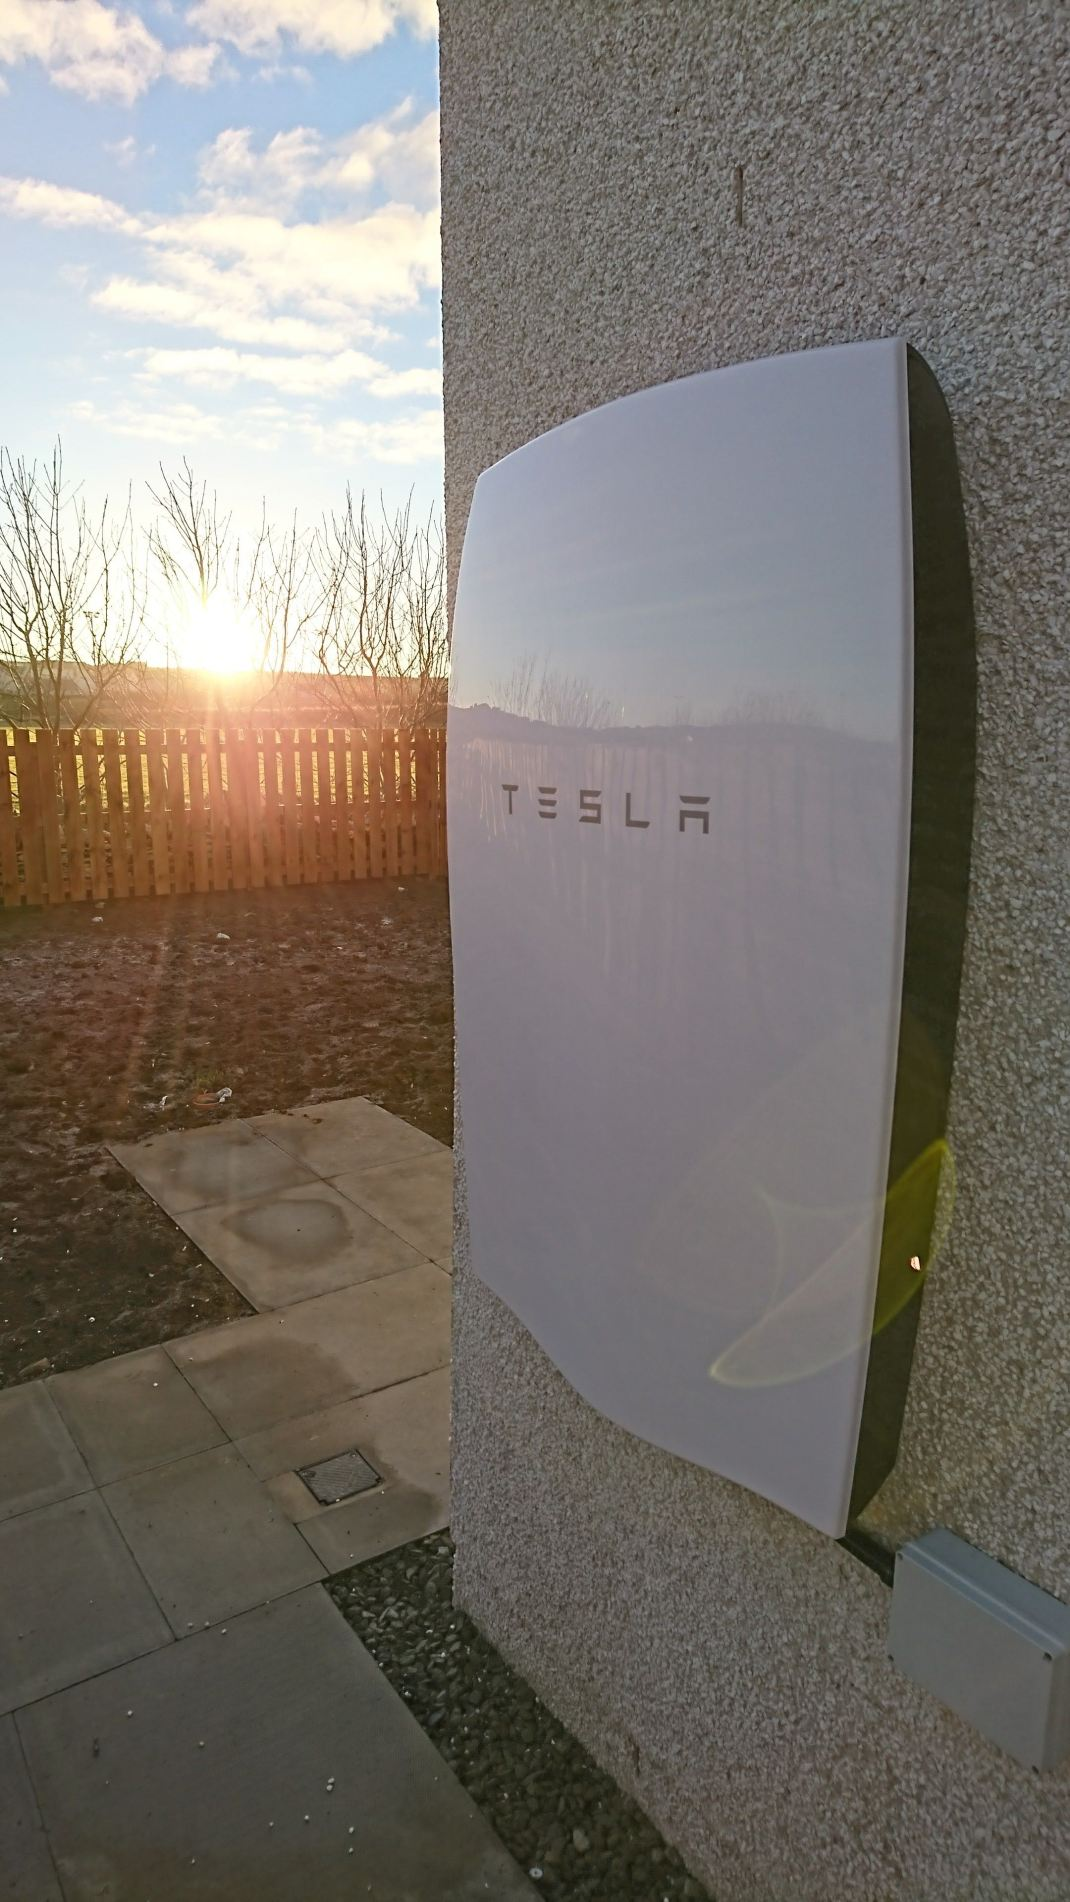 tesla-powerwall-battery-grainbank-housing-development